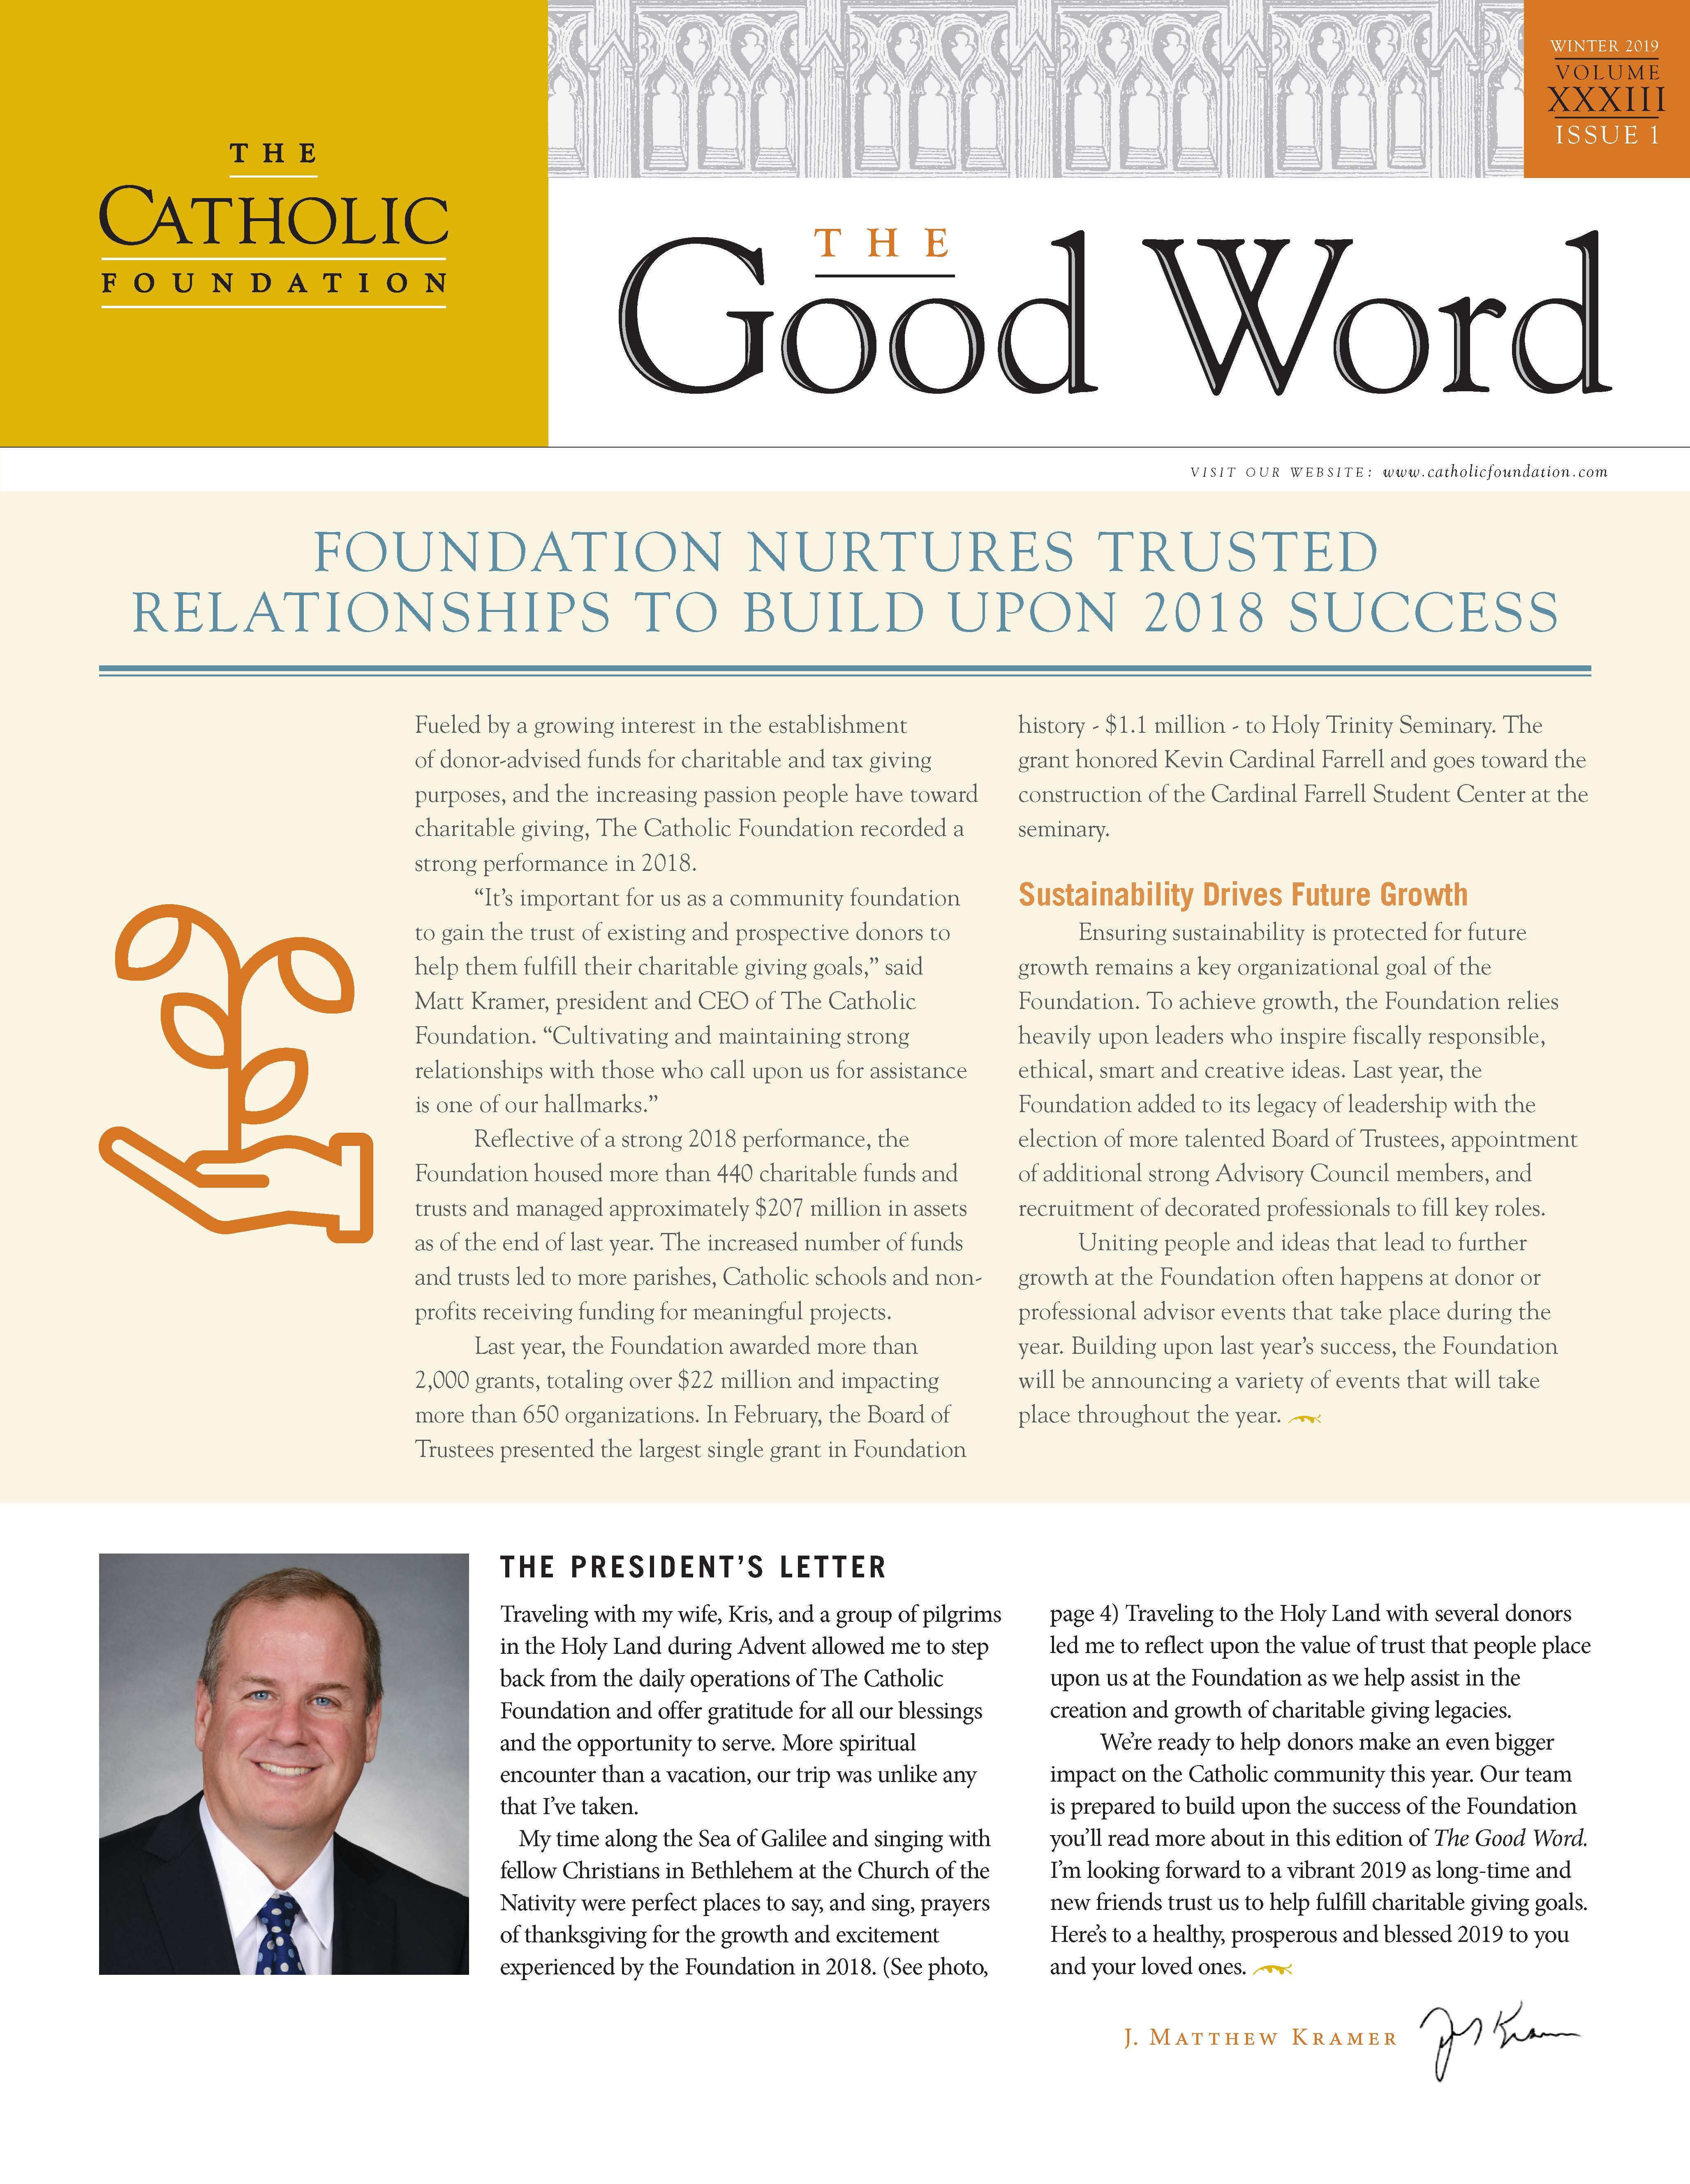 CF165 Winter 2019 The Good Word Final_Page_1.jpg